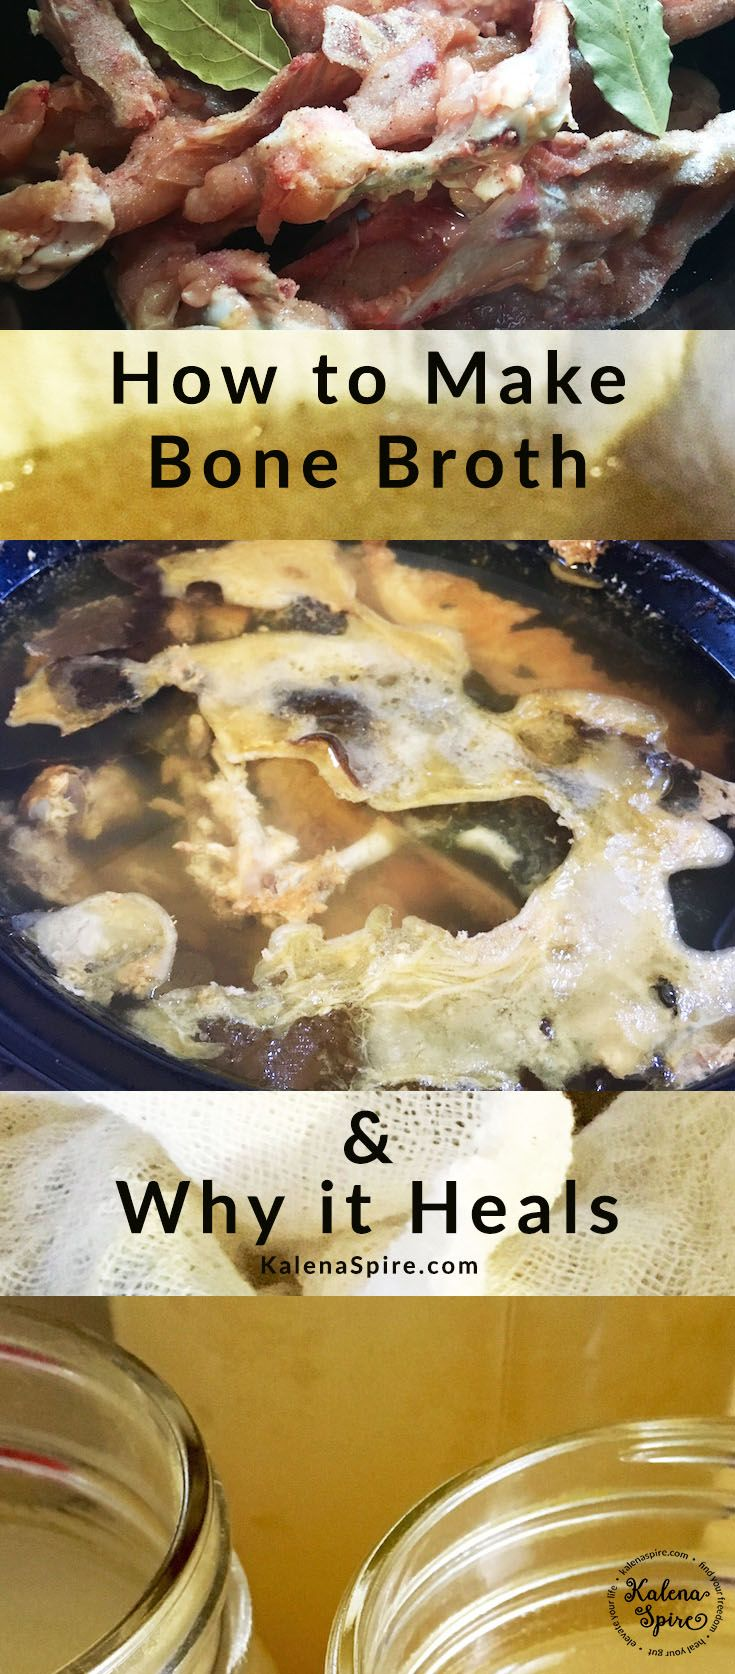 If you're not already consuming bone broth, now is the perfect time to start…